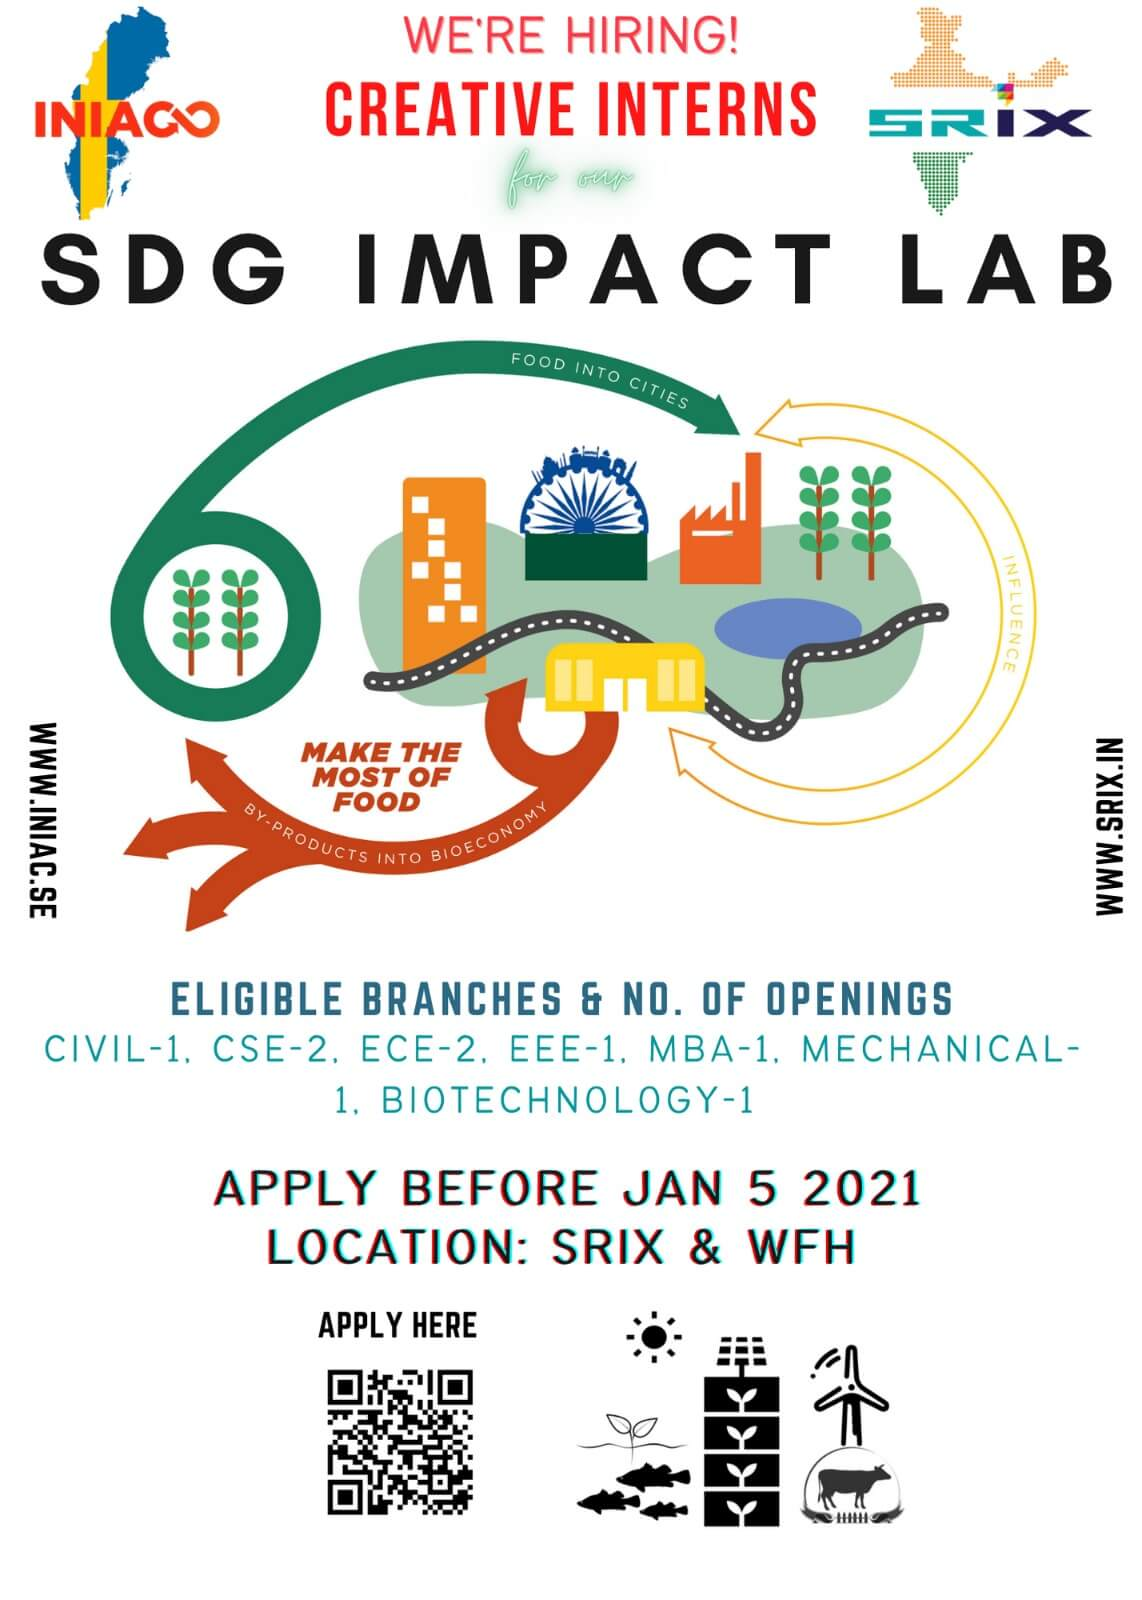 Internship Opportunity (Creative) at SDG Impact Lab, Warangal [10 Positions, 6 Months, Stipend Worth Rs. 4.5k]: Apply by Jan 5, 2021